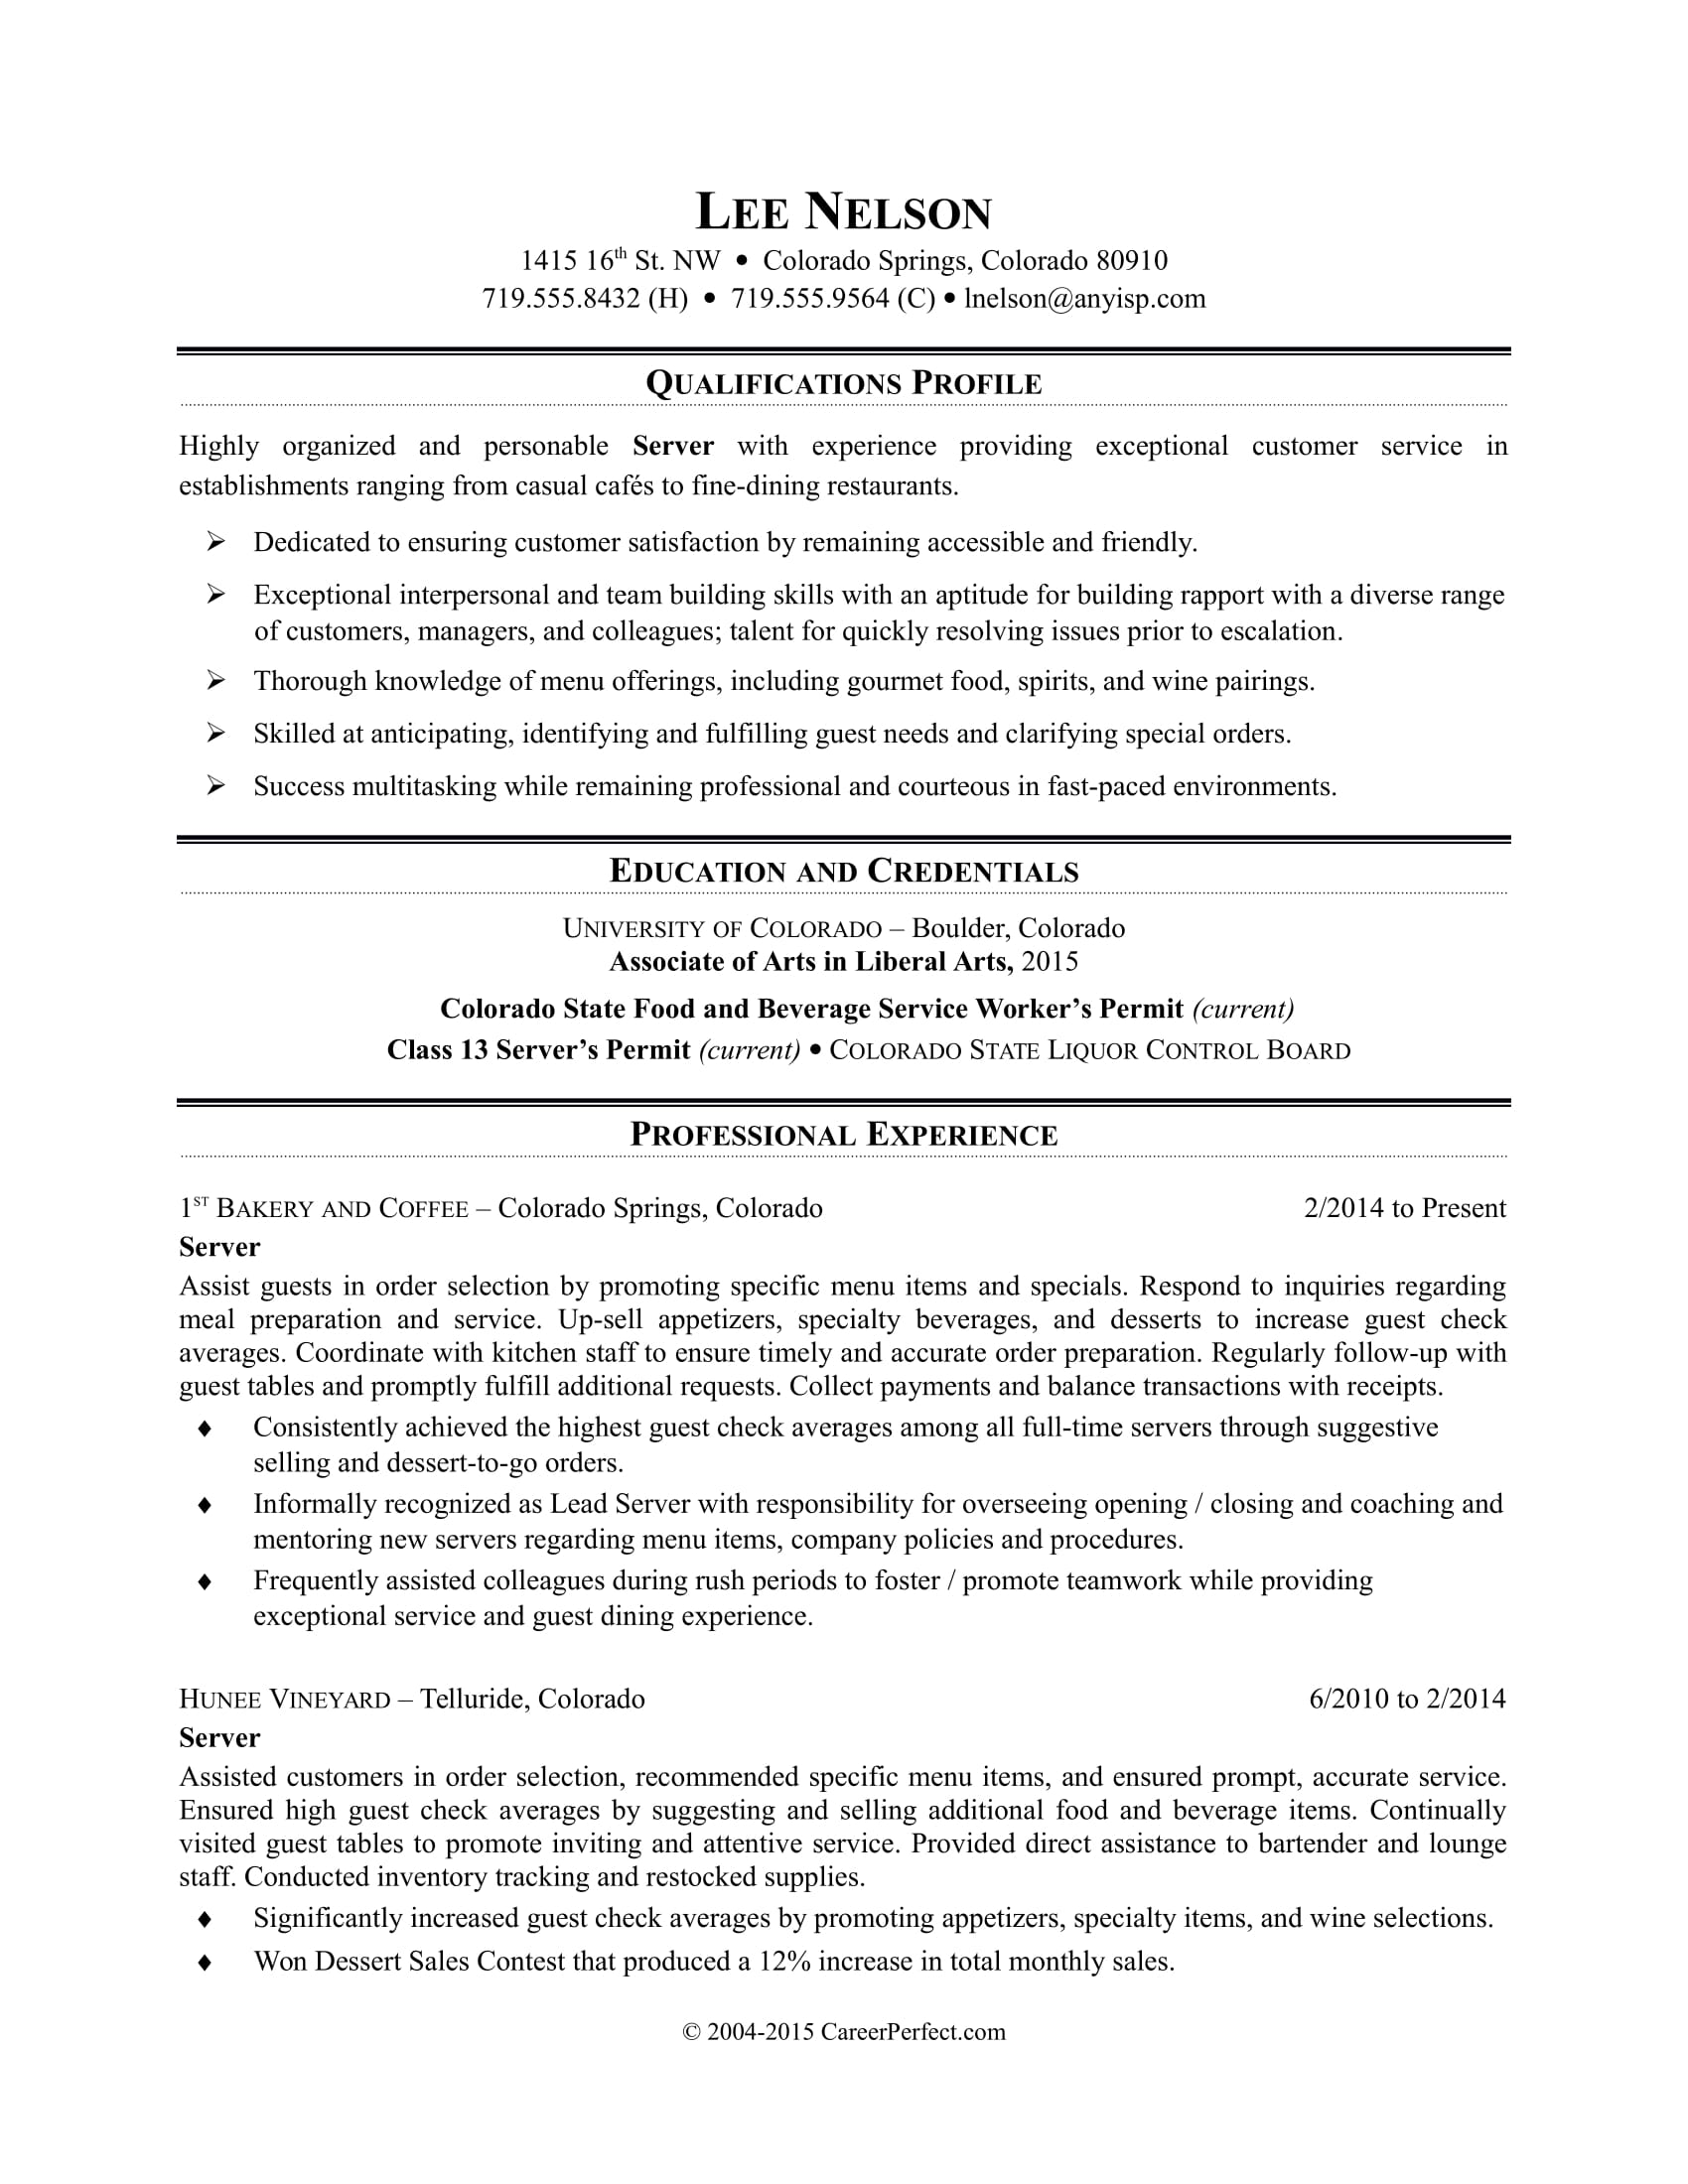 sample resume for a restaurant server - Restaurant Resume Template